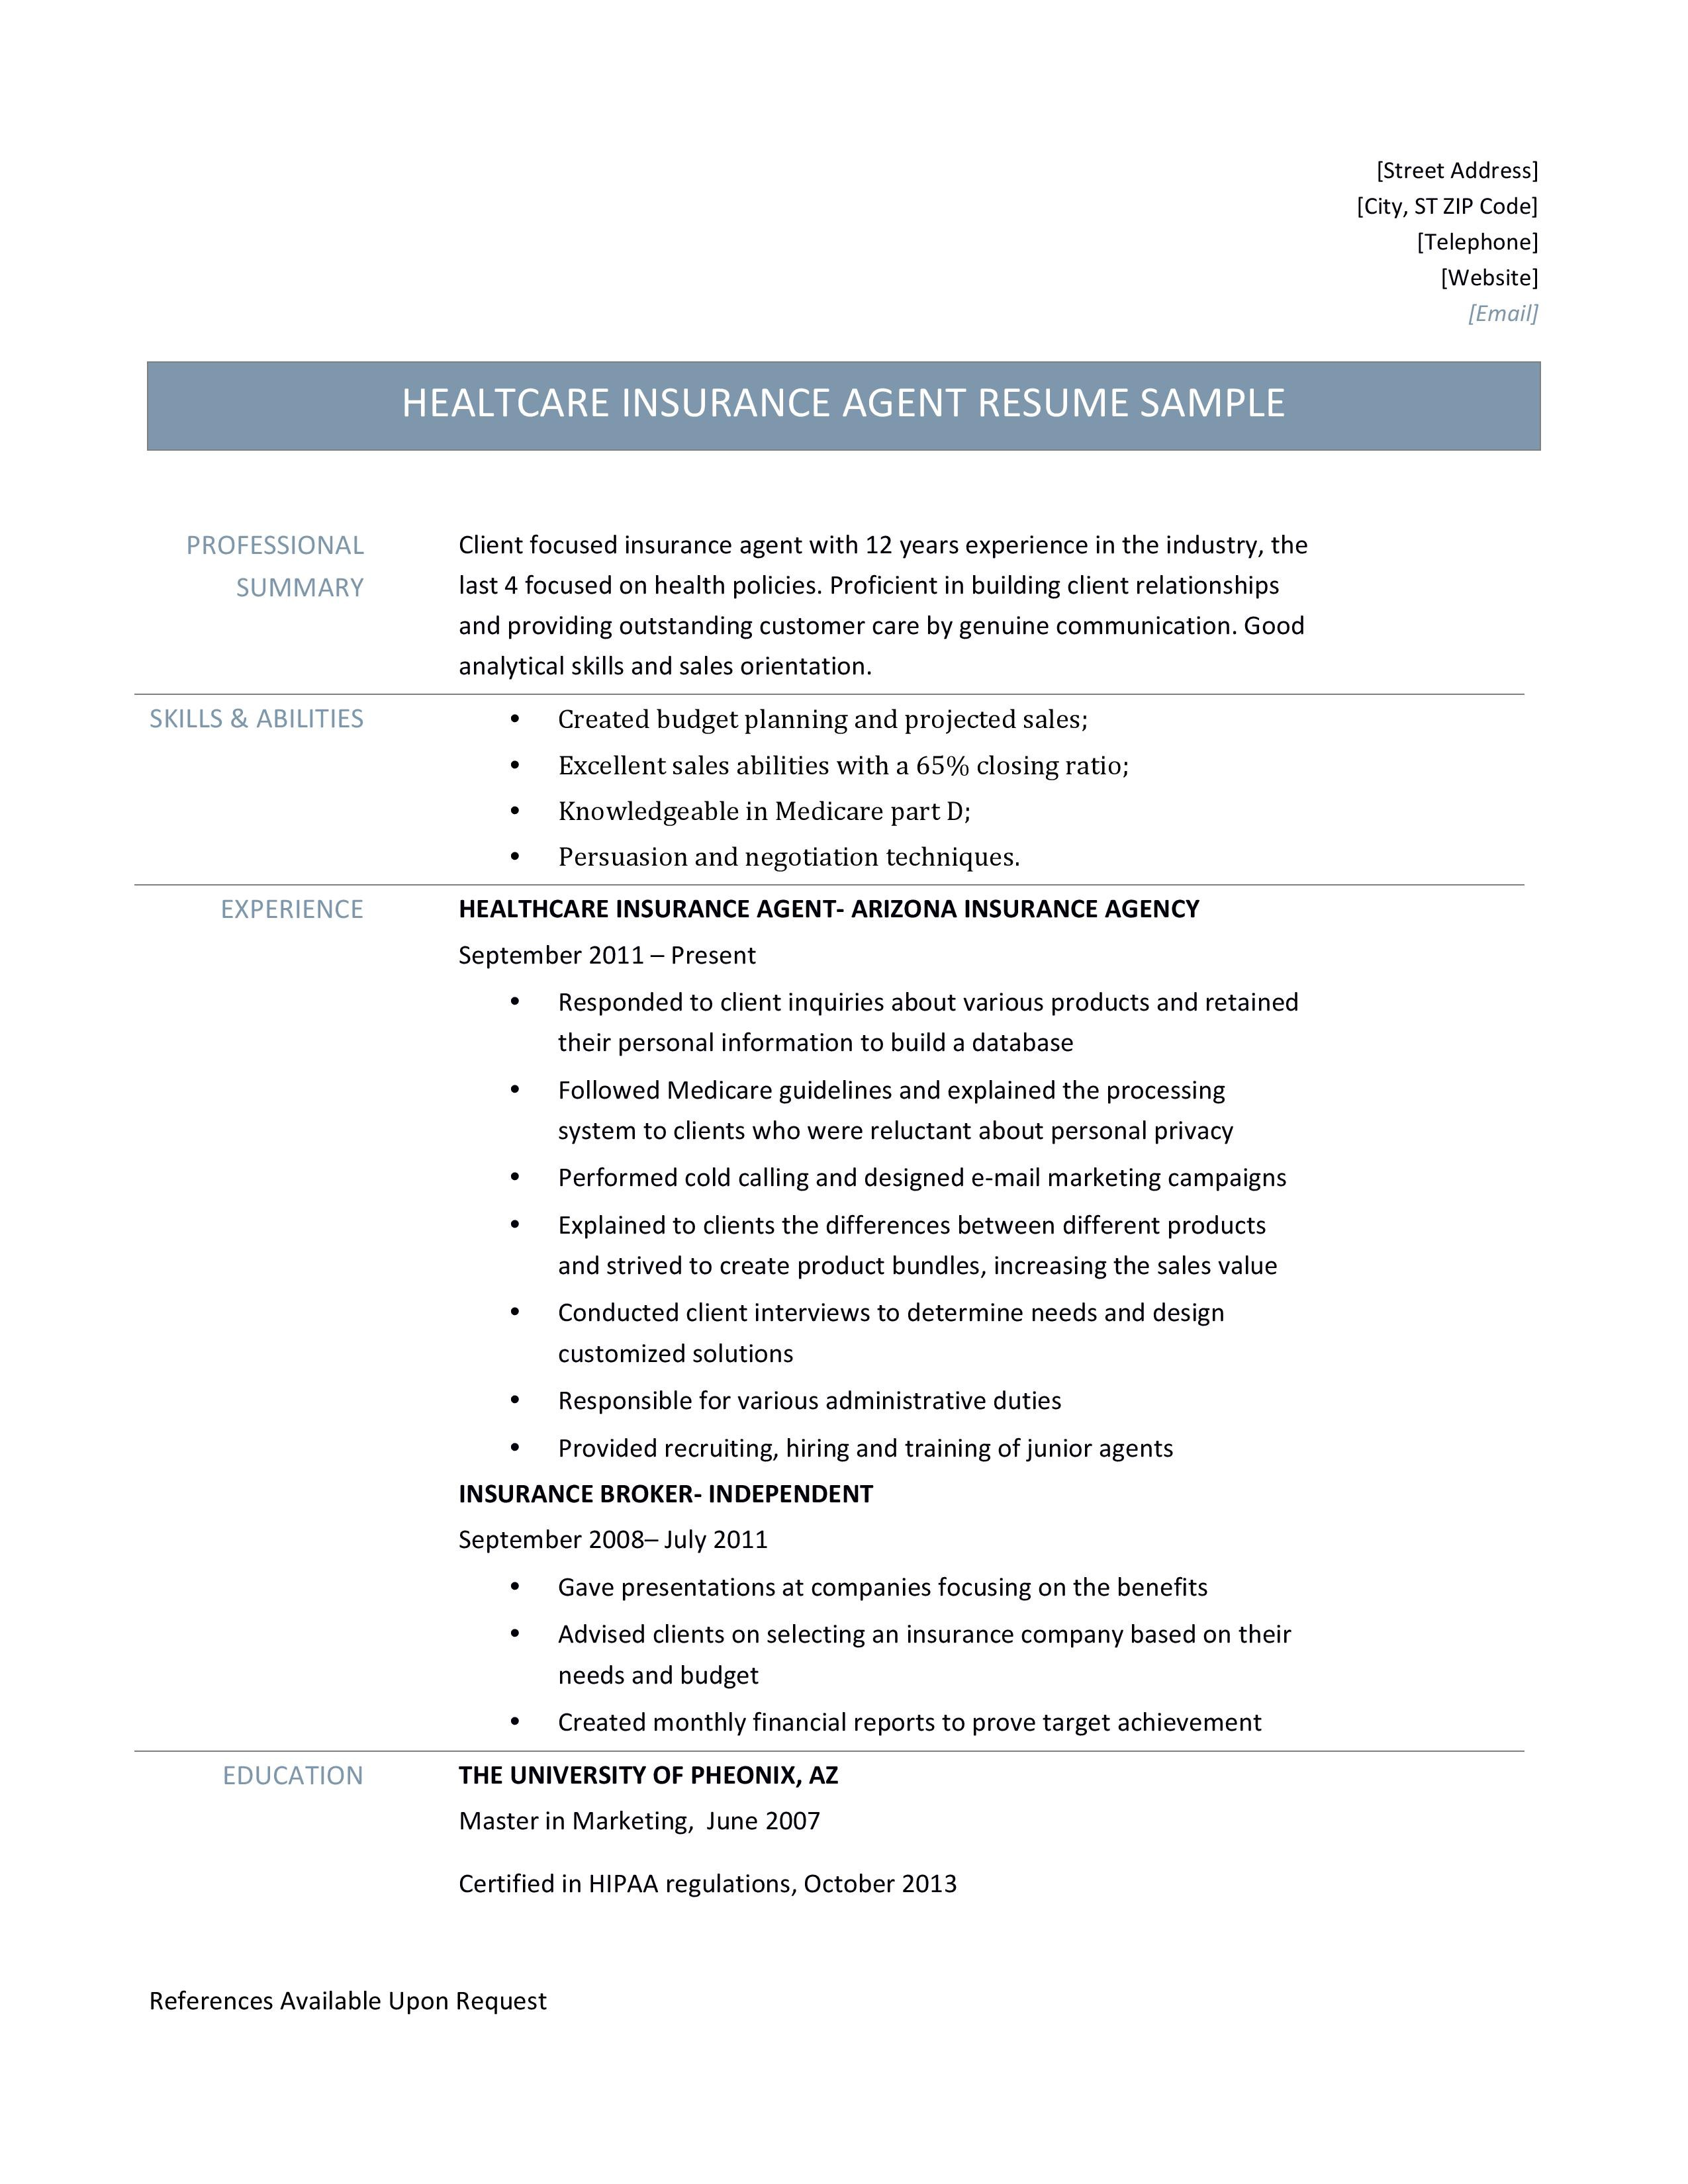 Health Insurance Agent Resume Samples and Job Description